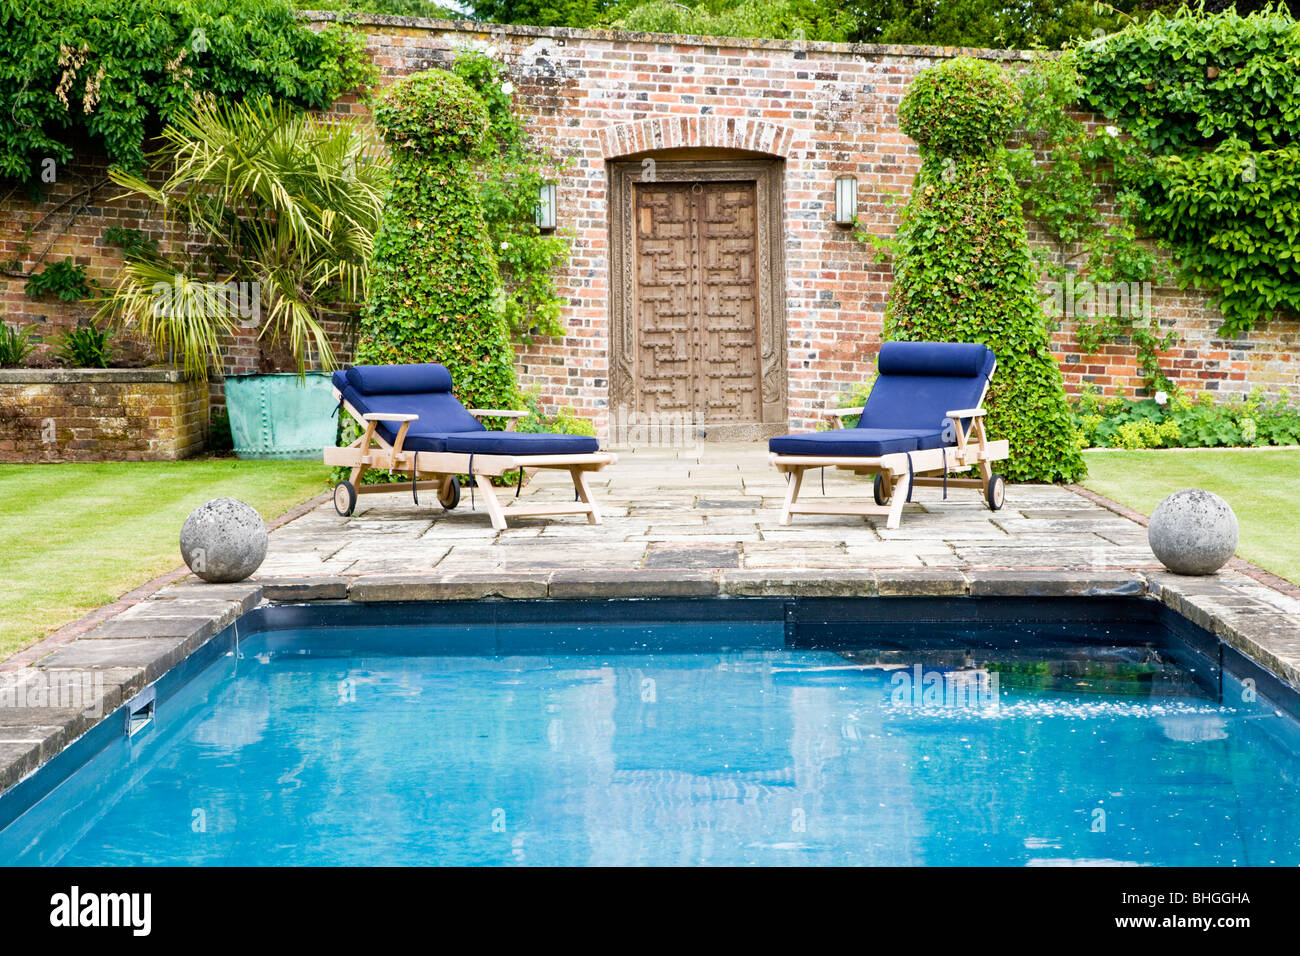 Pool Garten Absicherung Garden Swimming Pool England Stockfotos Garden Swimming Pool